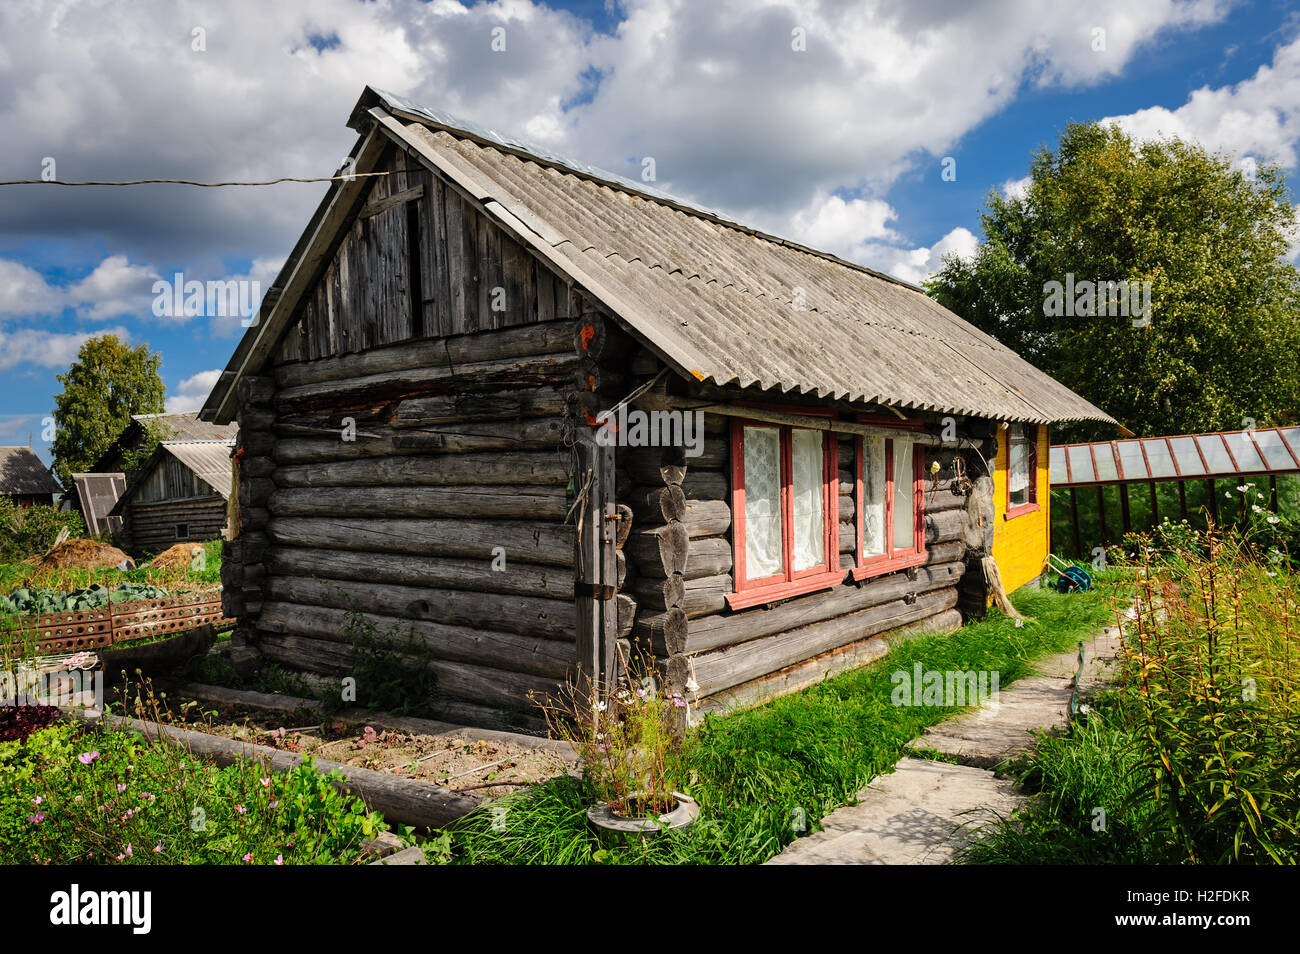 Russisches Holzhaus Ancient Russian Architecture Stockfotos And Ancient Russian